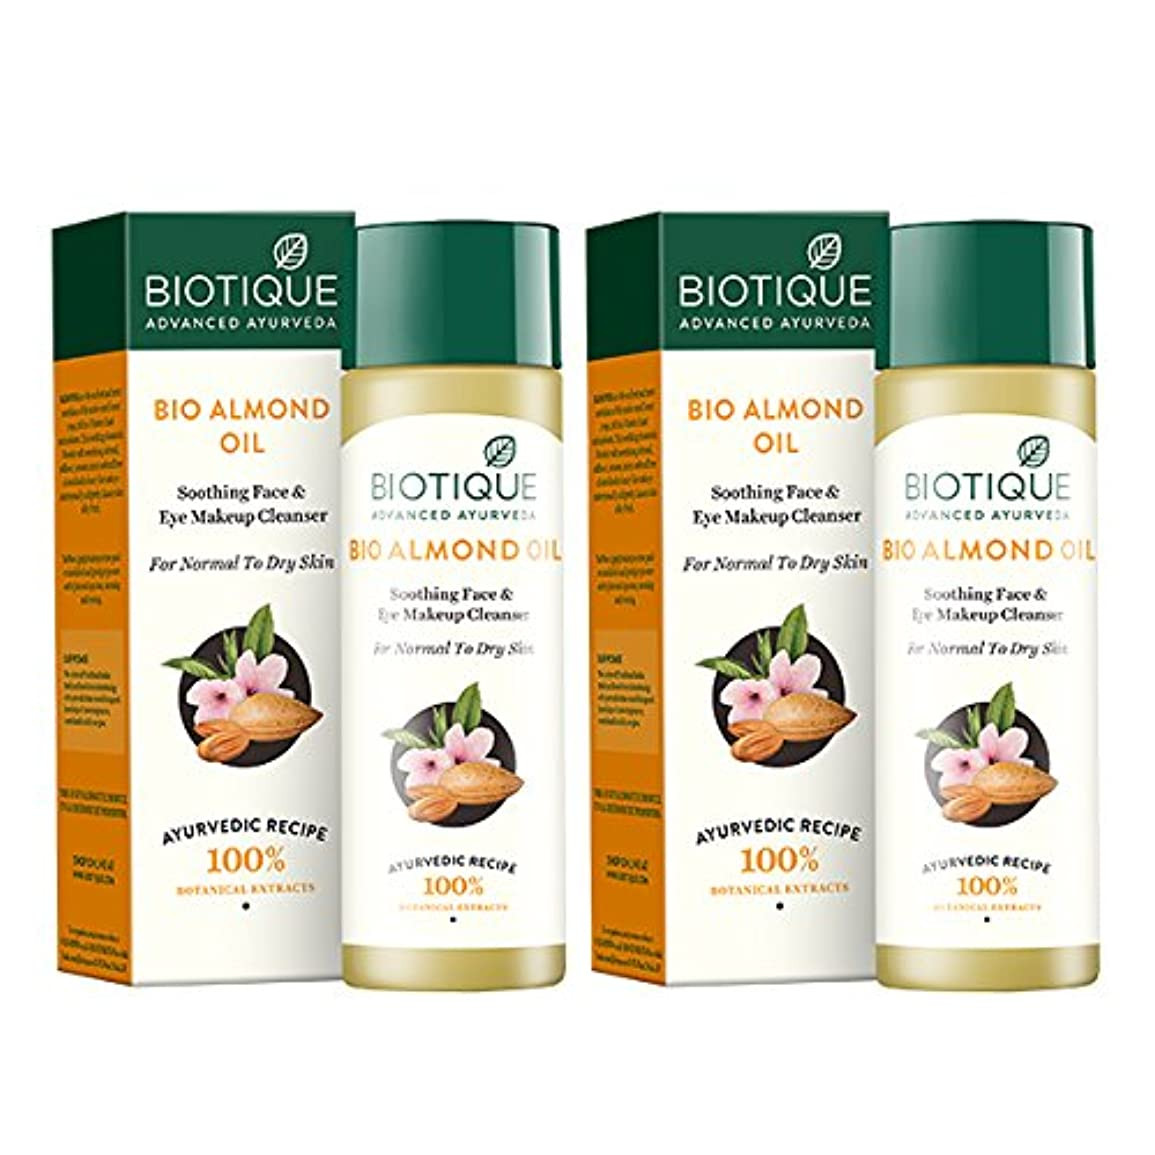 トーナメントナラーバー乞食Biotique Bio Almond Oil Soothing Face and Eye Makeup Cleanser for Normal To Dry Skin, 120ml (Pack of 2)